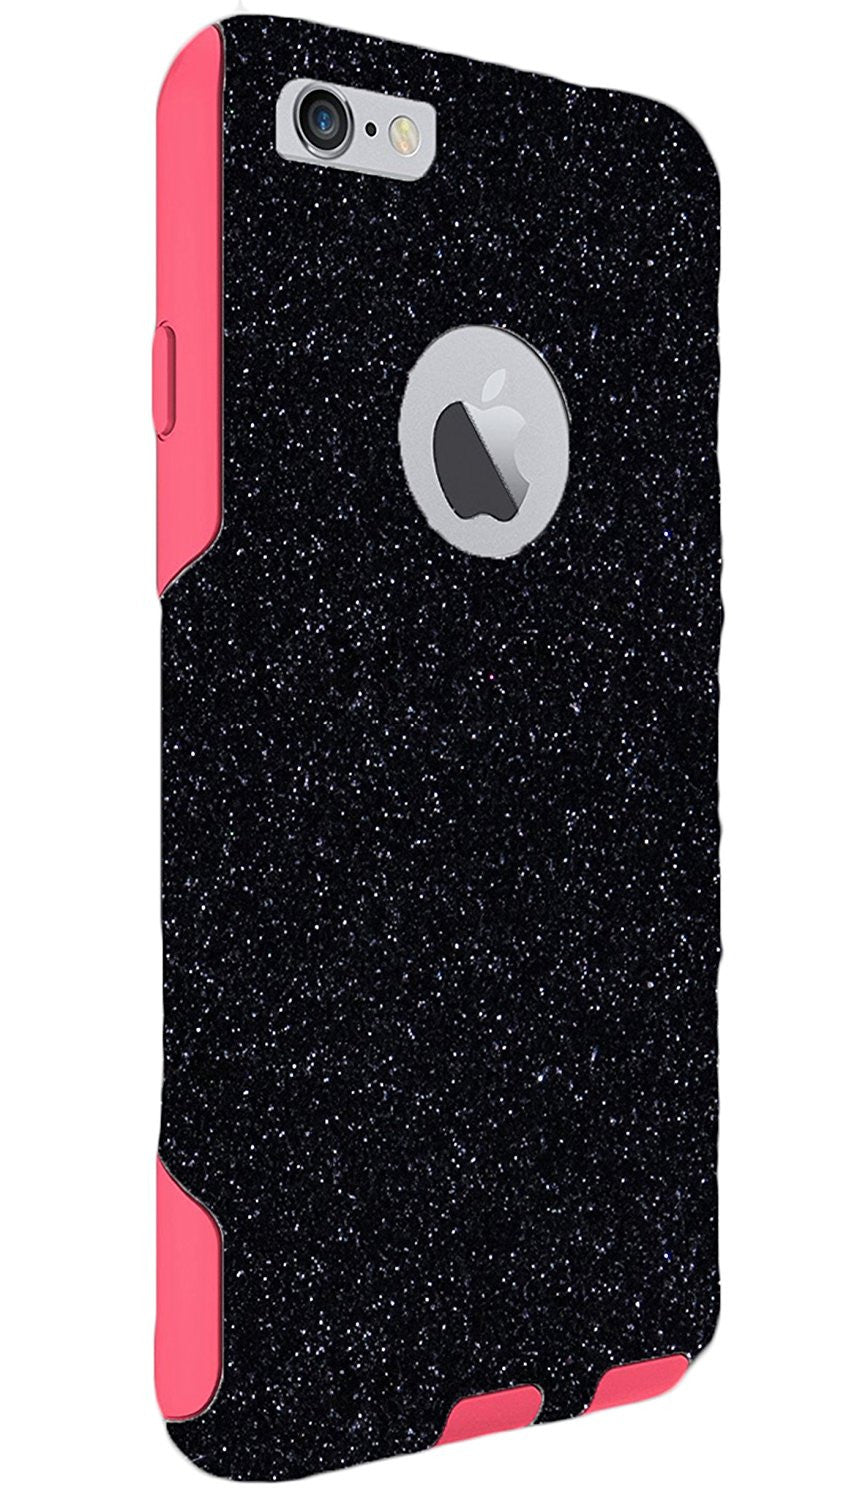 otterbox phone case iphone 6s